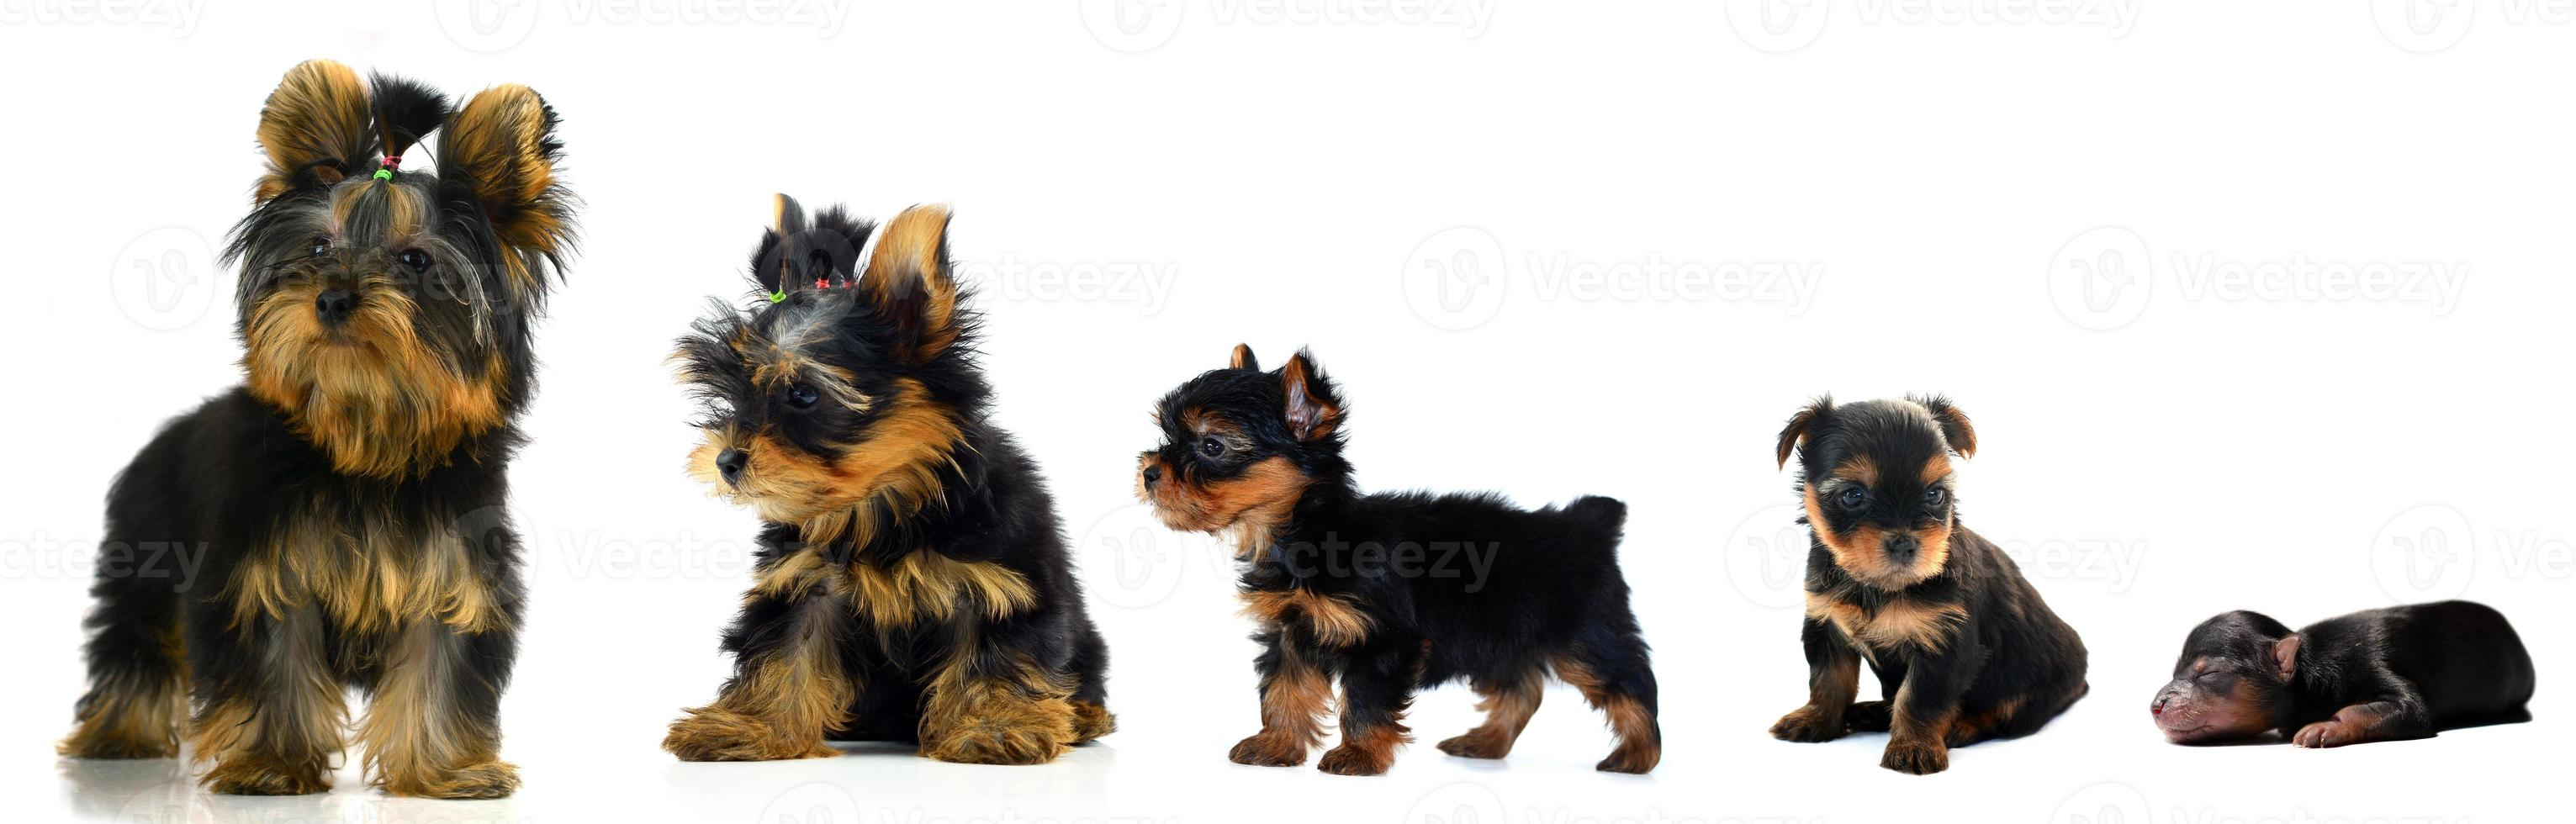 evolution a Yorkshire Terrier photo